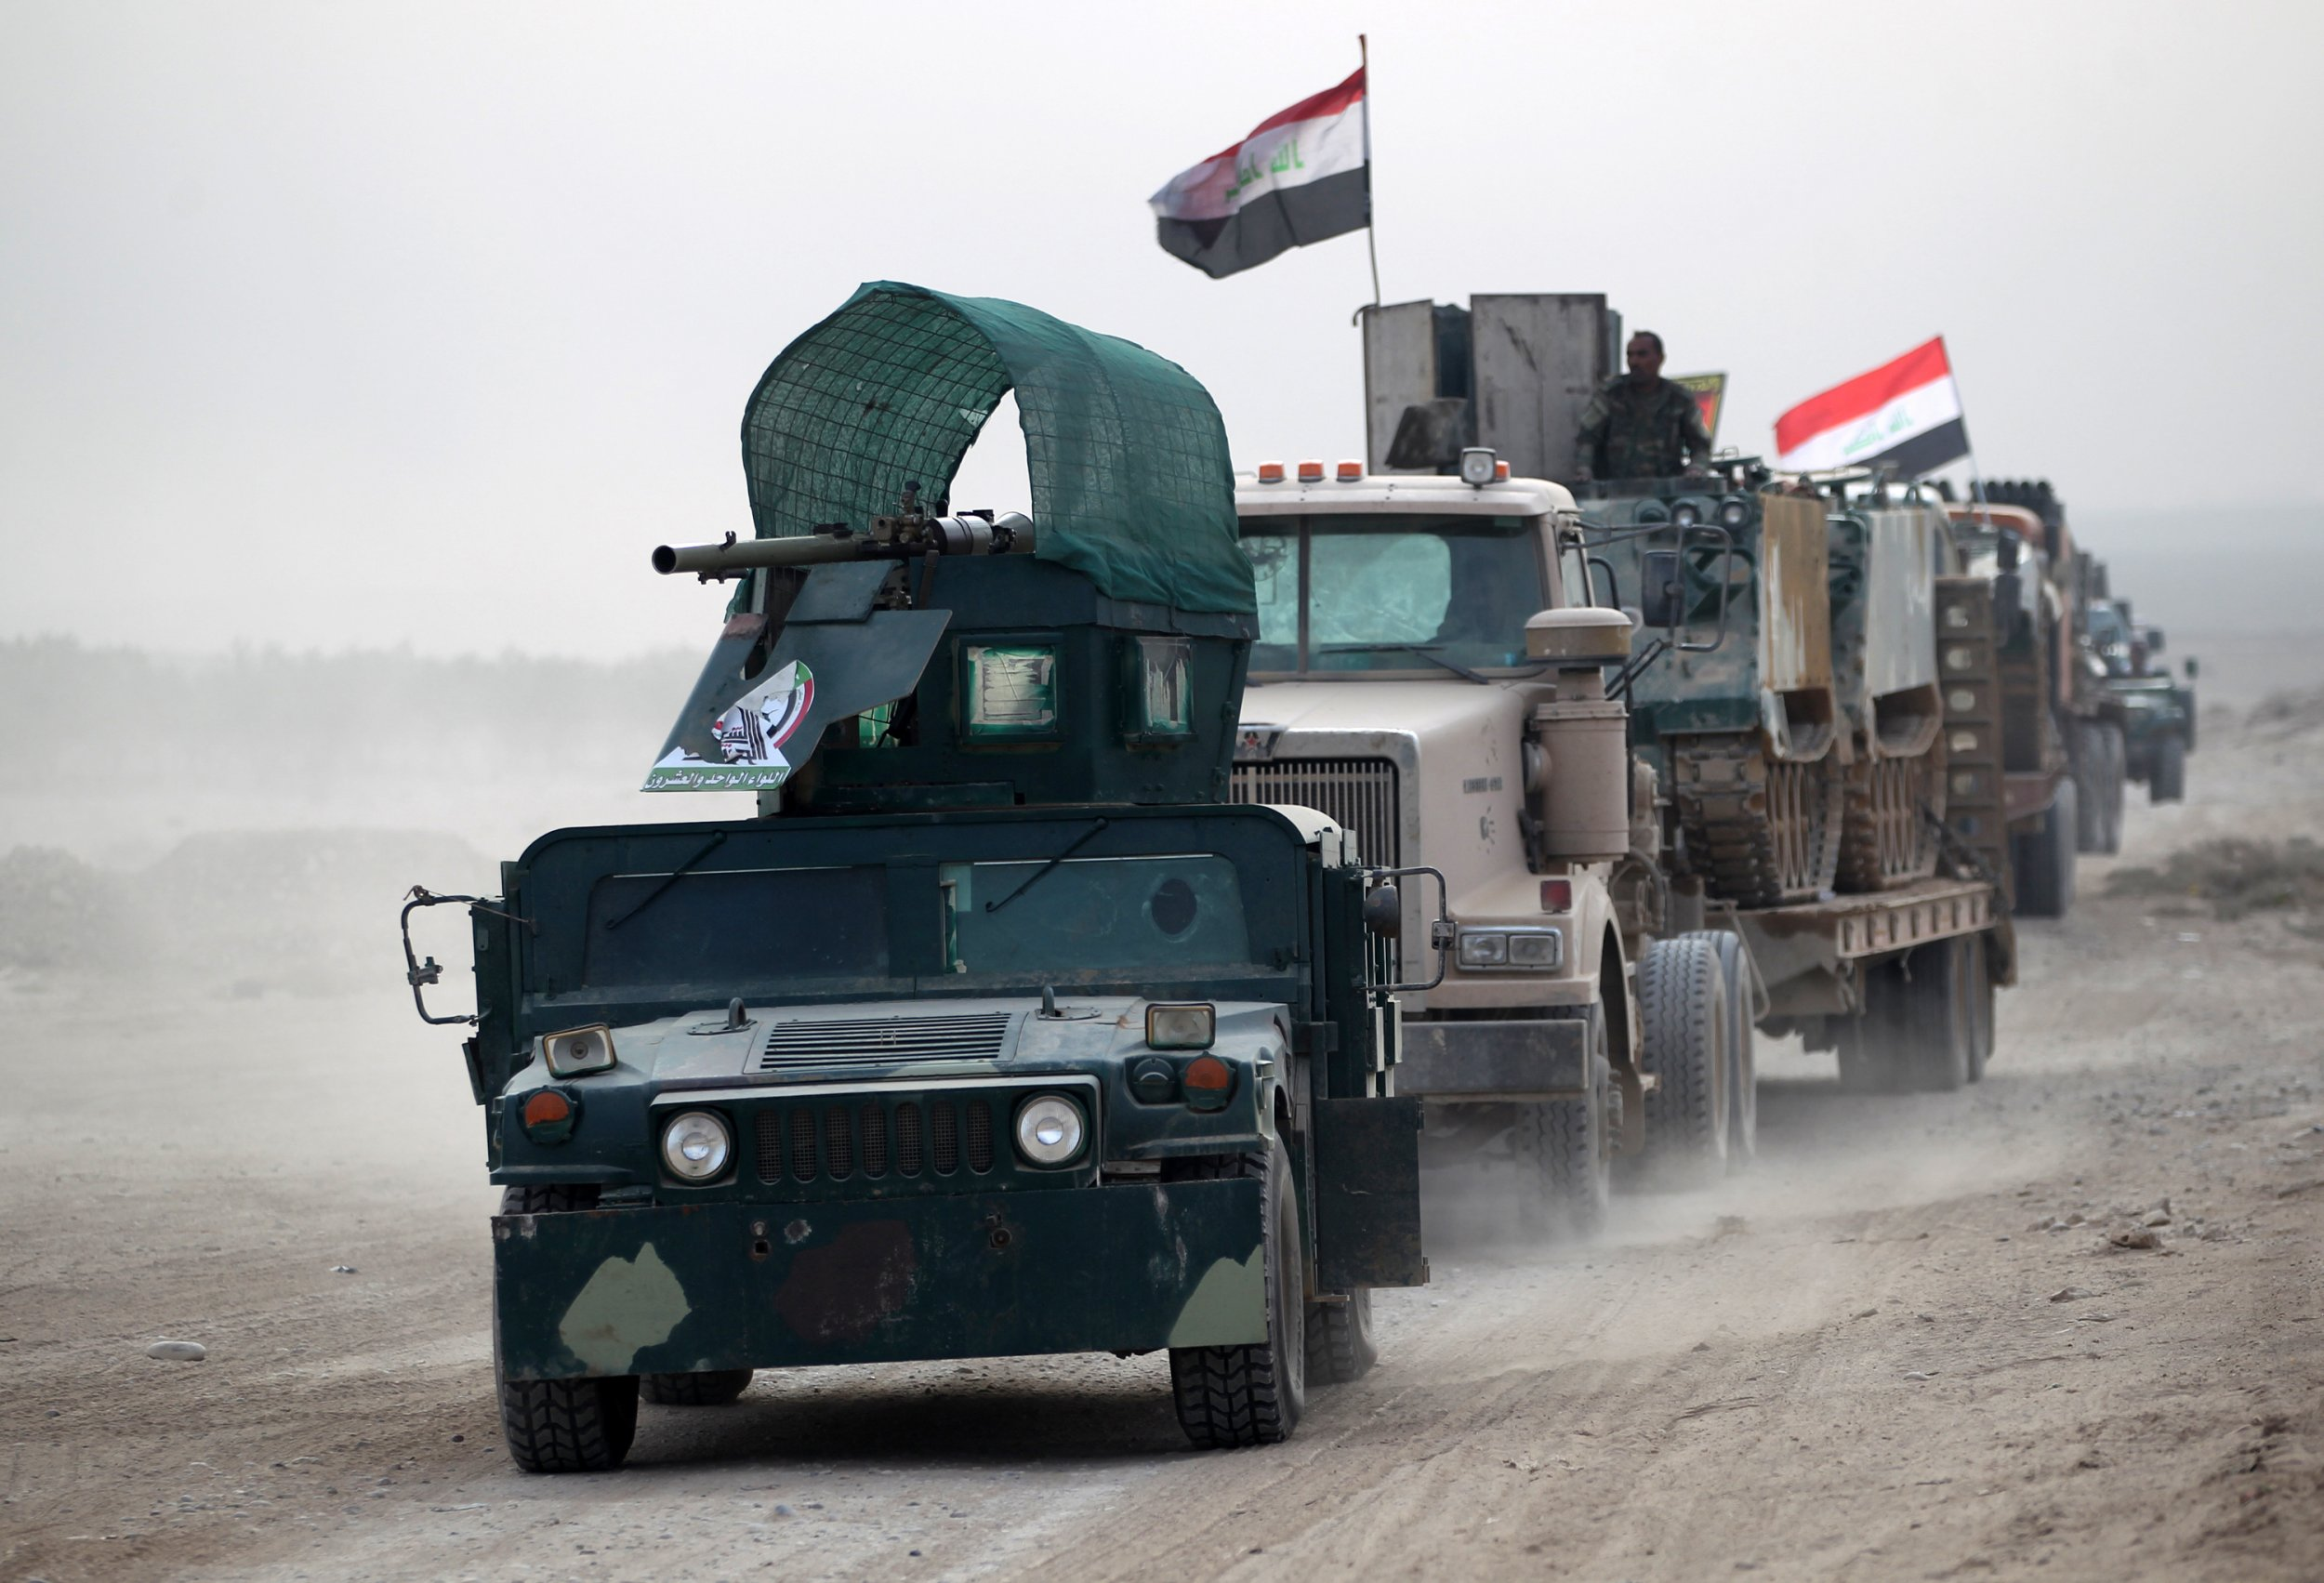 Iraqi offensive on Mosul